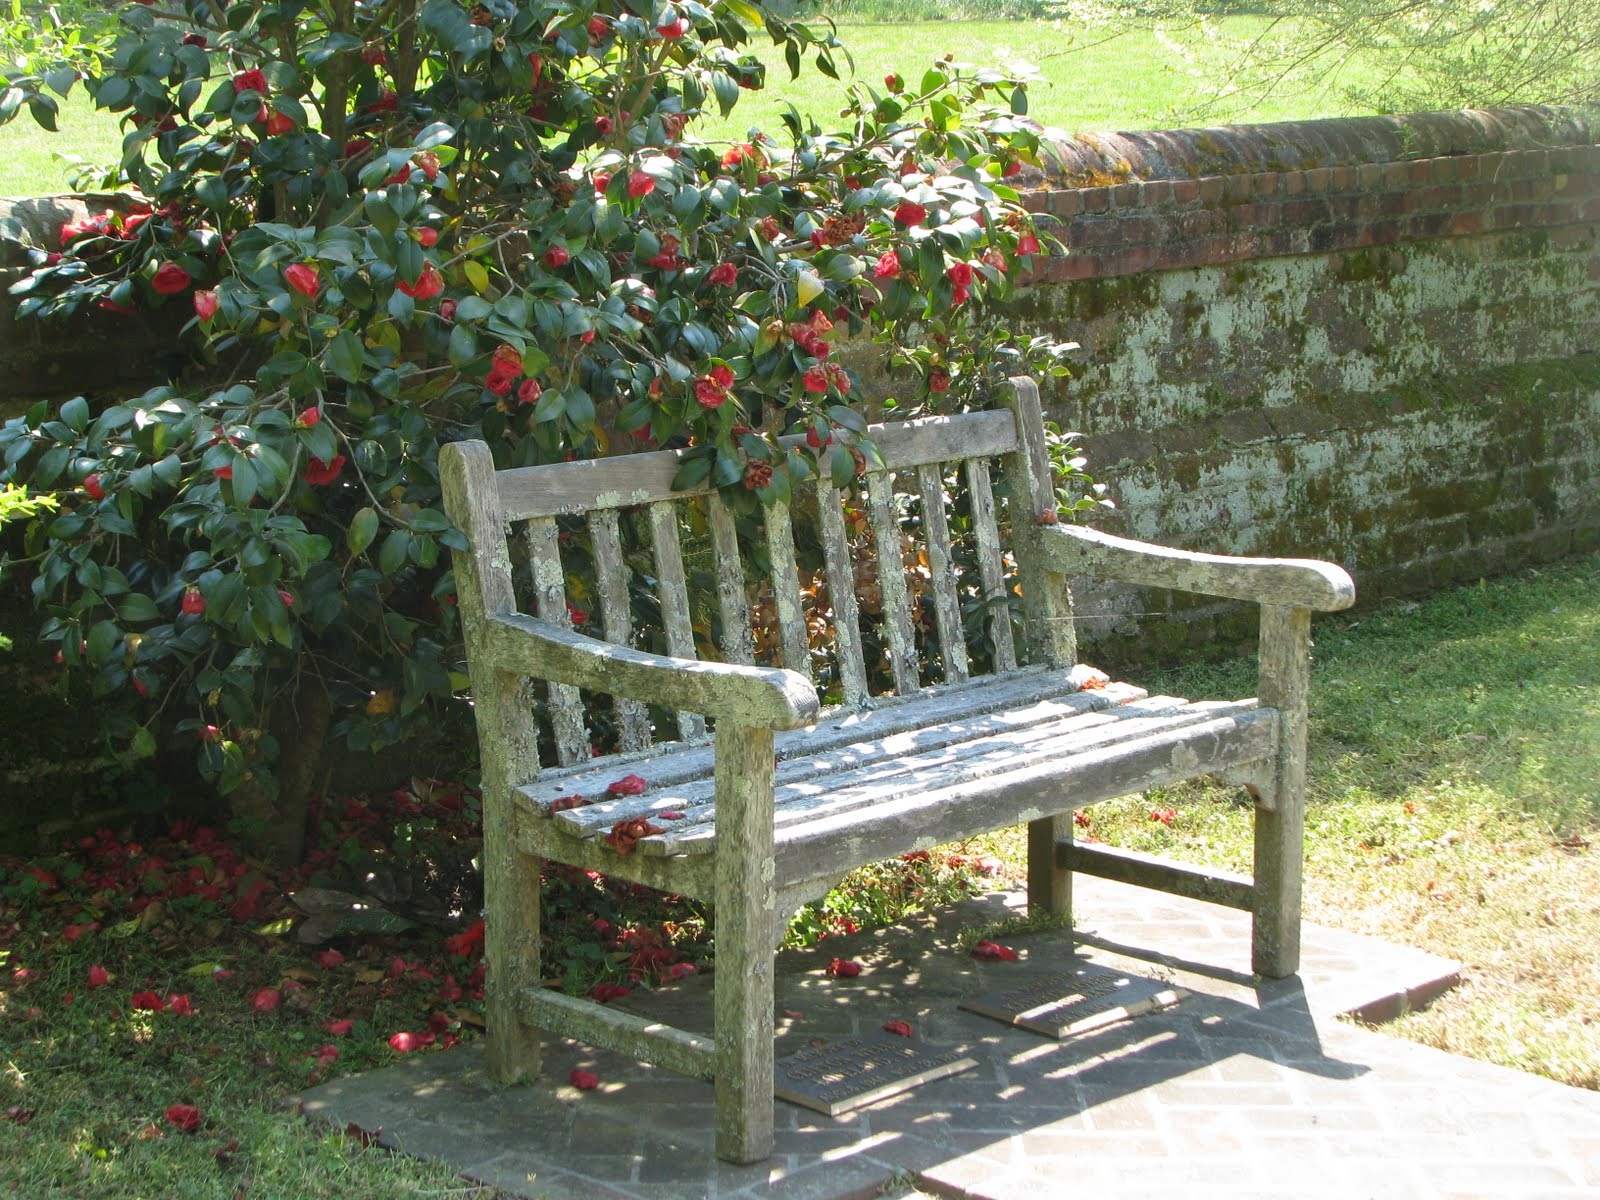 life in mathews  here we have a photo from historic abingdon episcopal church of a lovely bench nestled in some very lovely flowers in a patch of very nice sunlight